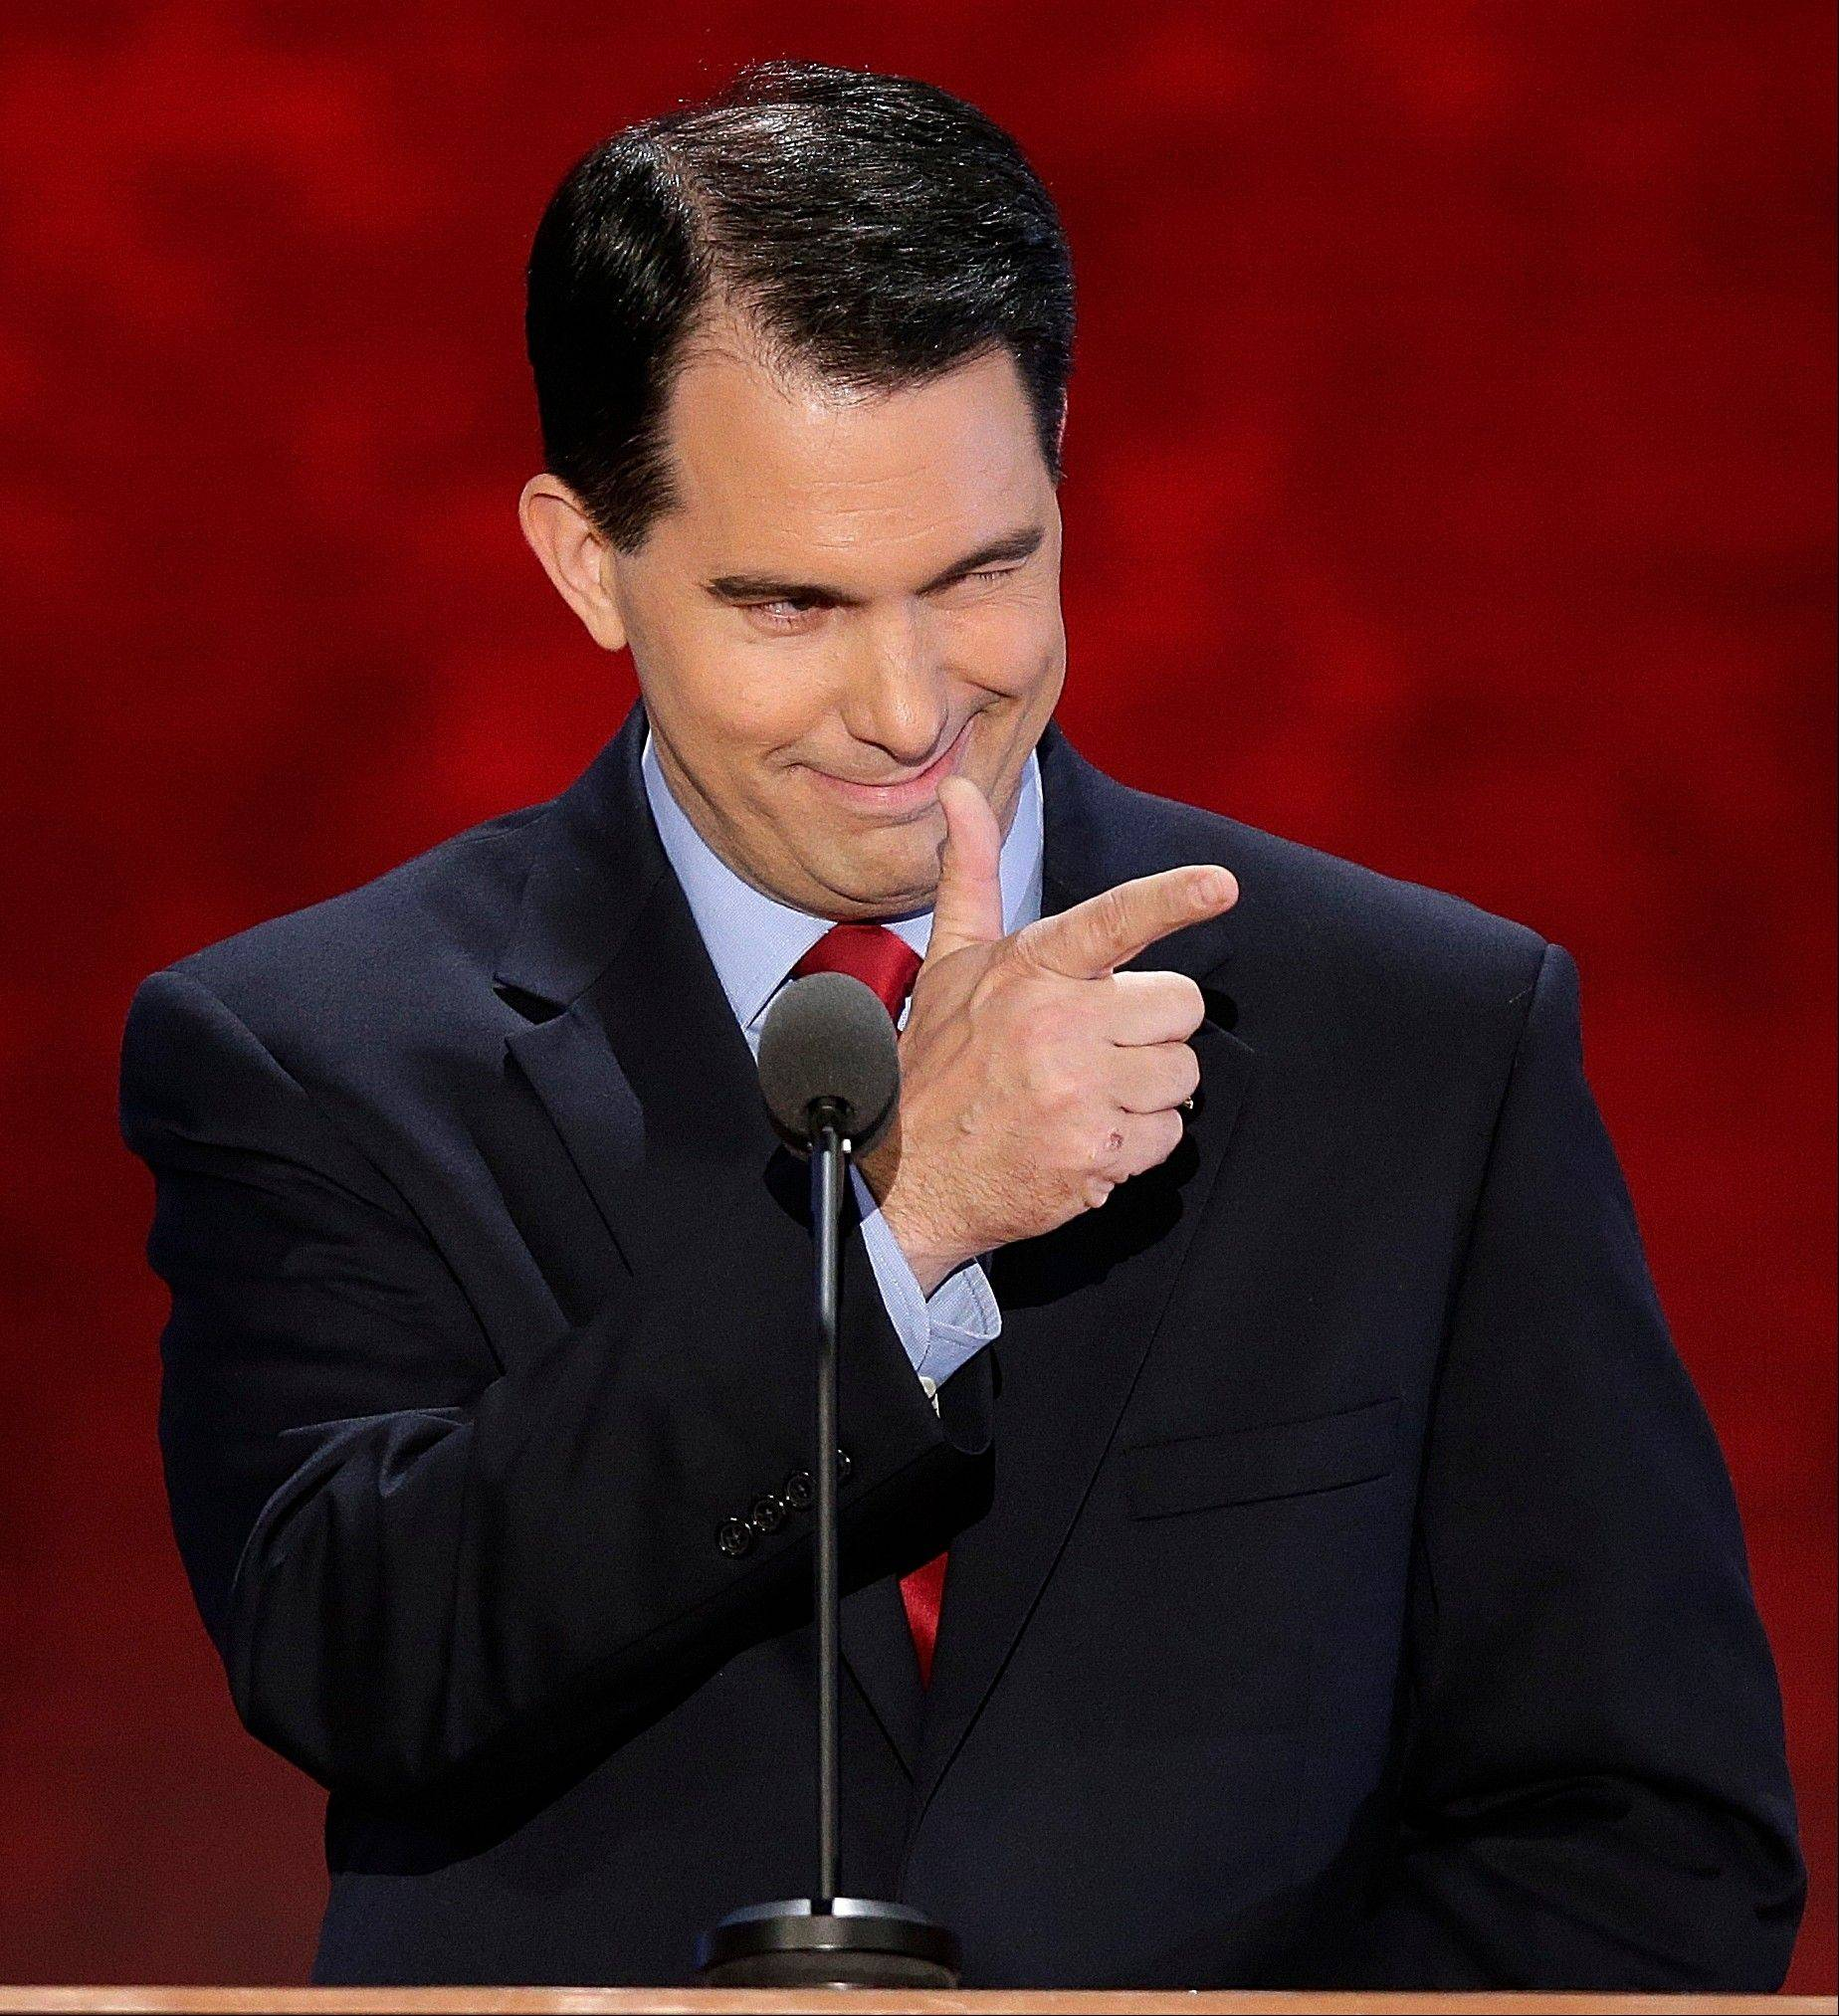 Wisconsin Gov. Scott Walker Tuesday addresses the Republican National Convention in Tampa, Fla.